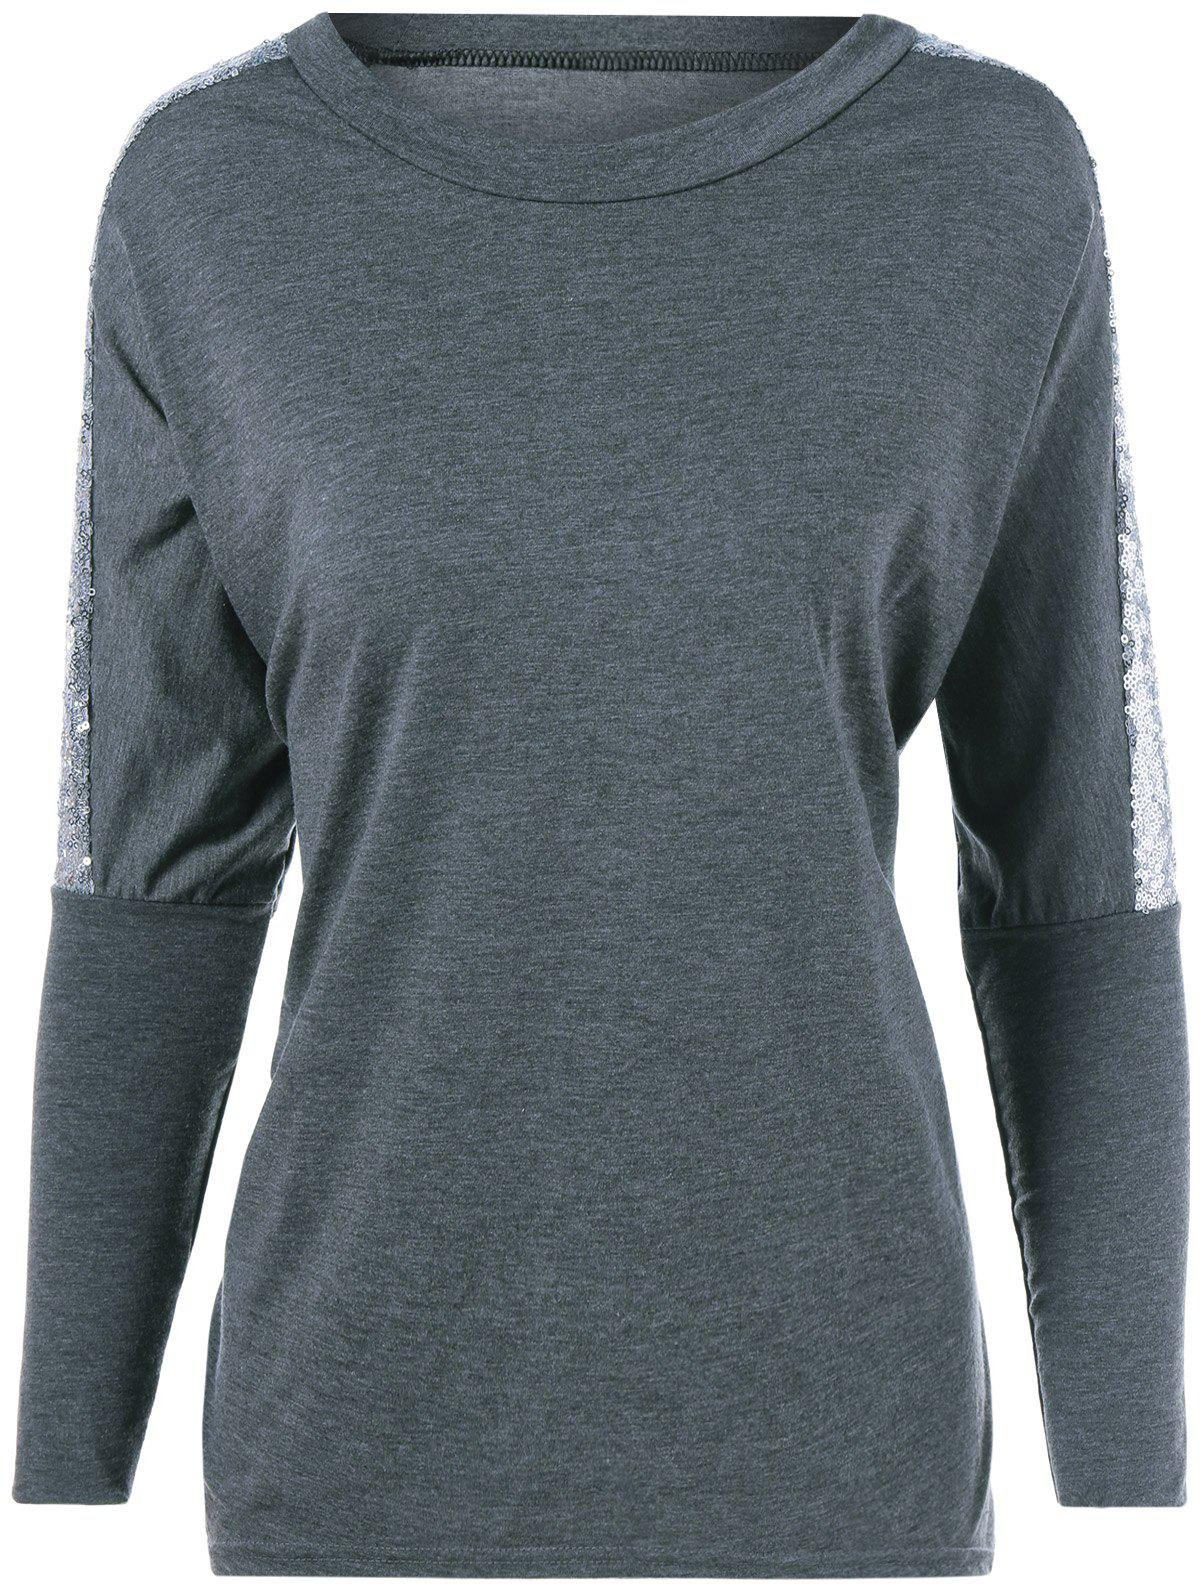 Sequin Jewel Neck Long Sleeve T-Shirt - GRAY 2XL